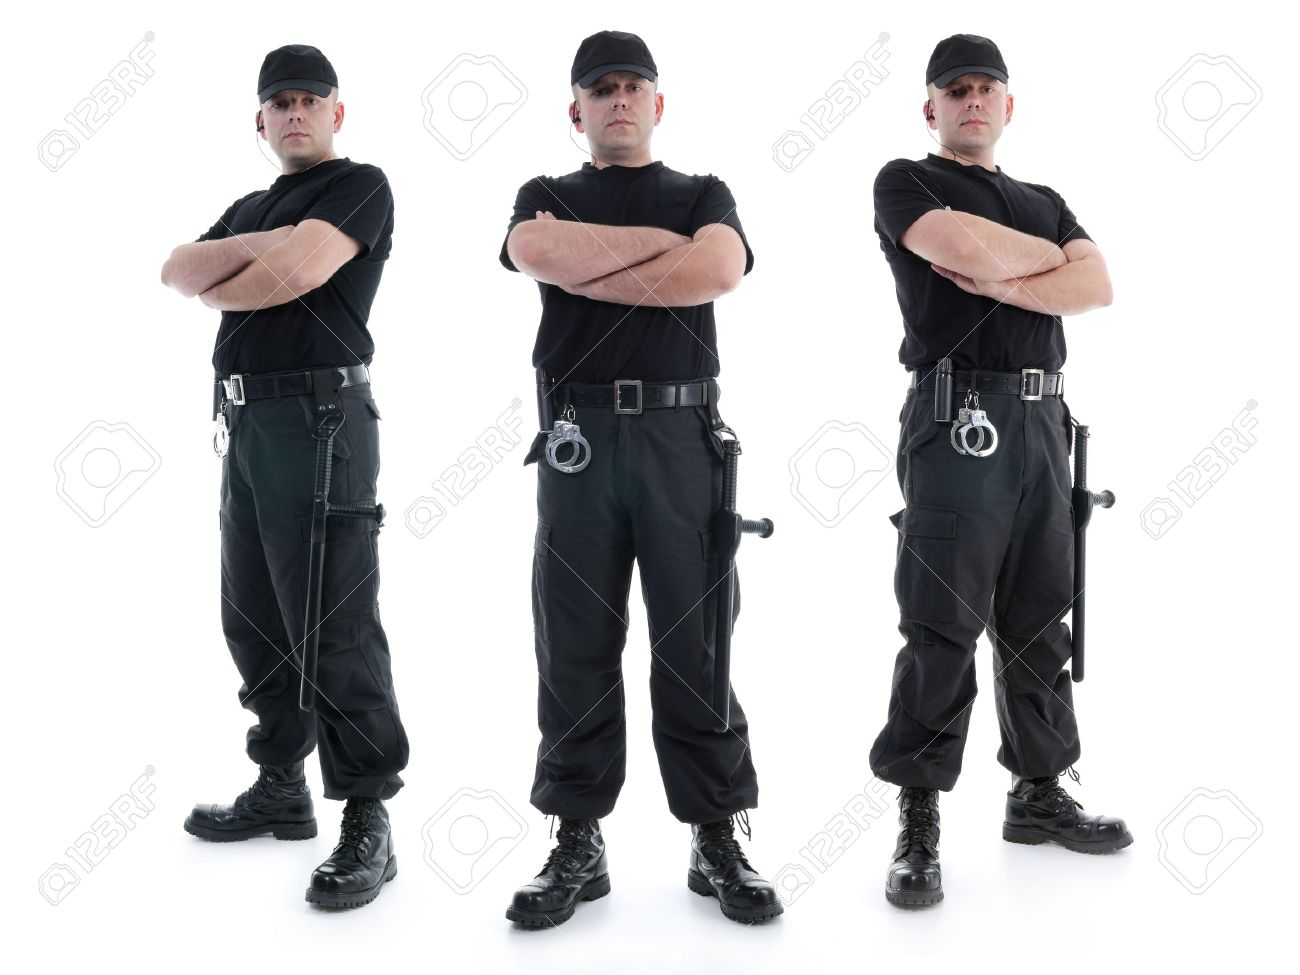 Three security men wearing black uniform equipped with police clubs and handcuffs standing confidently with arms crossed from left to right, shot on white Stock Photo - 25987954